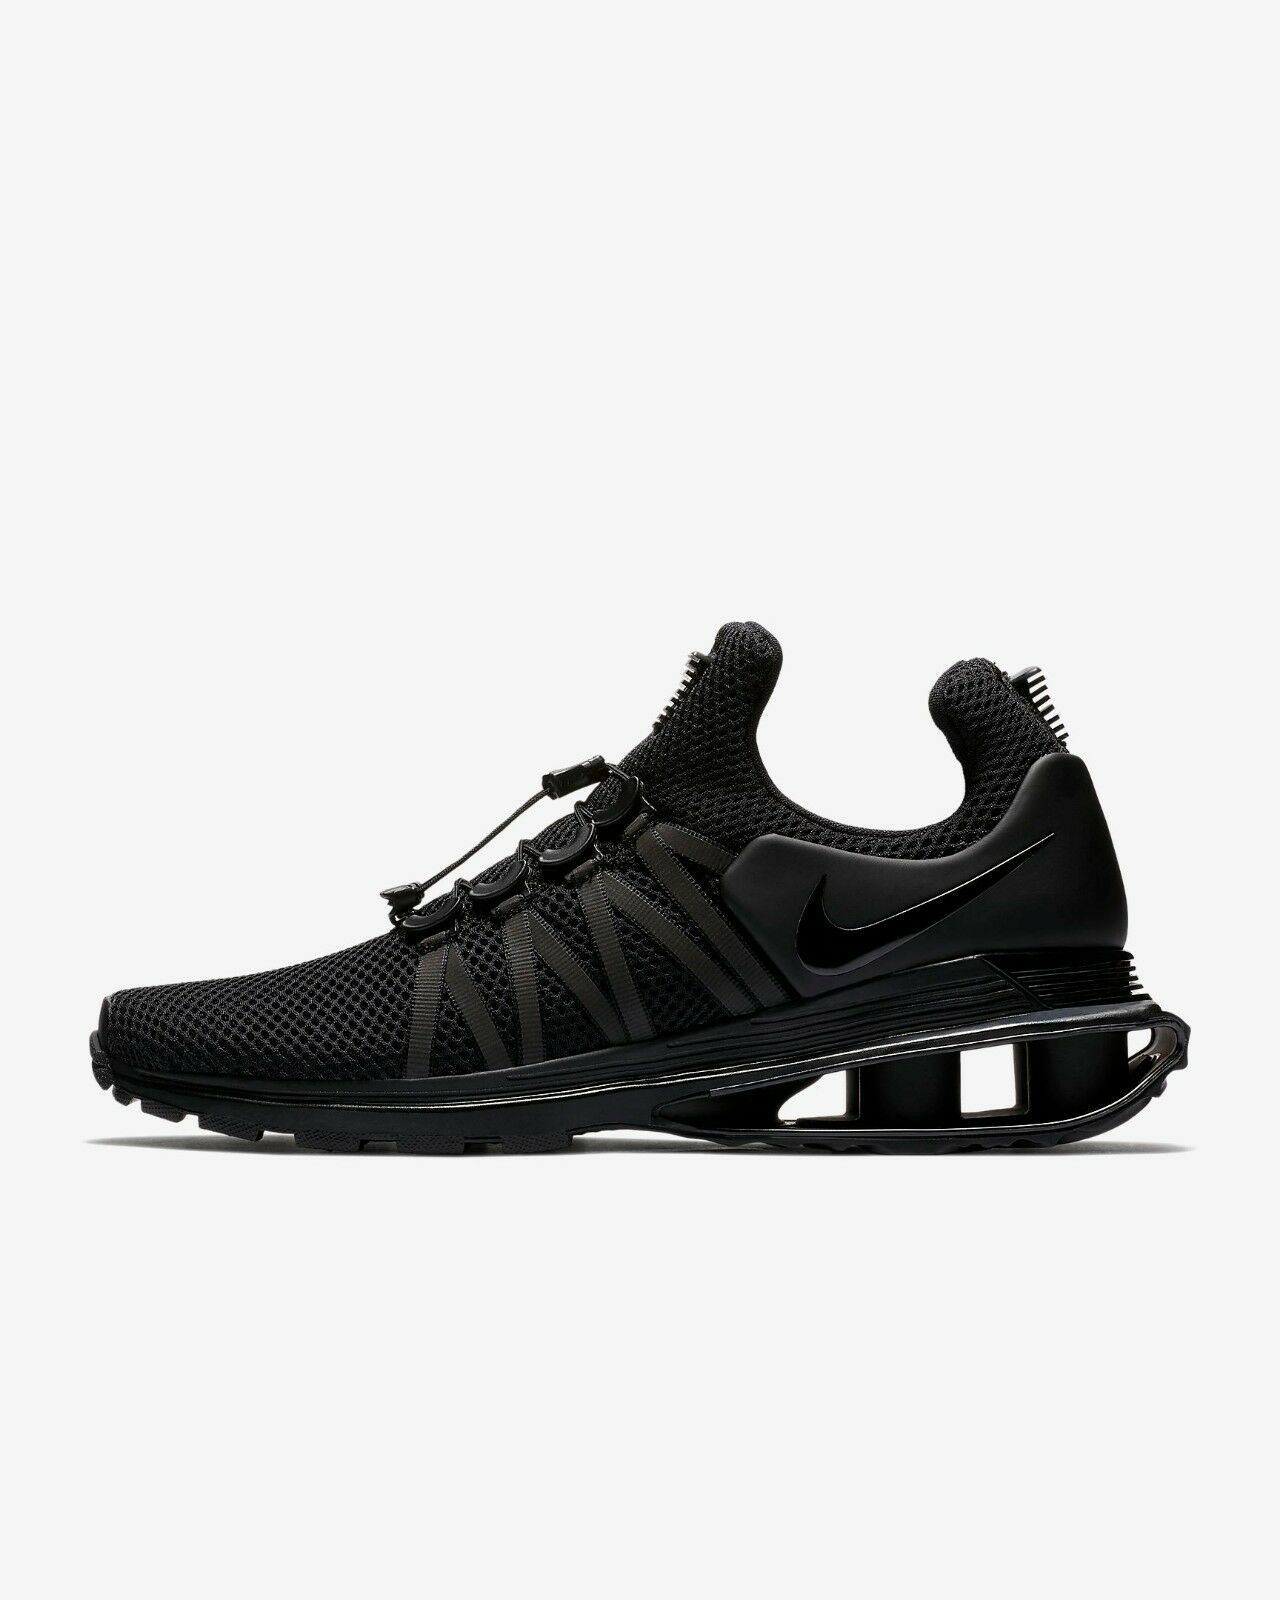 aed9d0863bcd Men s New Authentic Nike Shox Gravity Shoes and 50 similar items